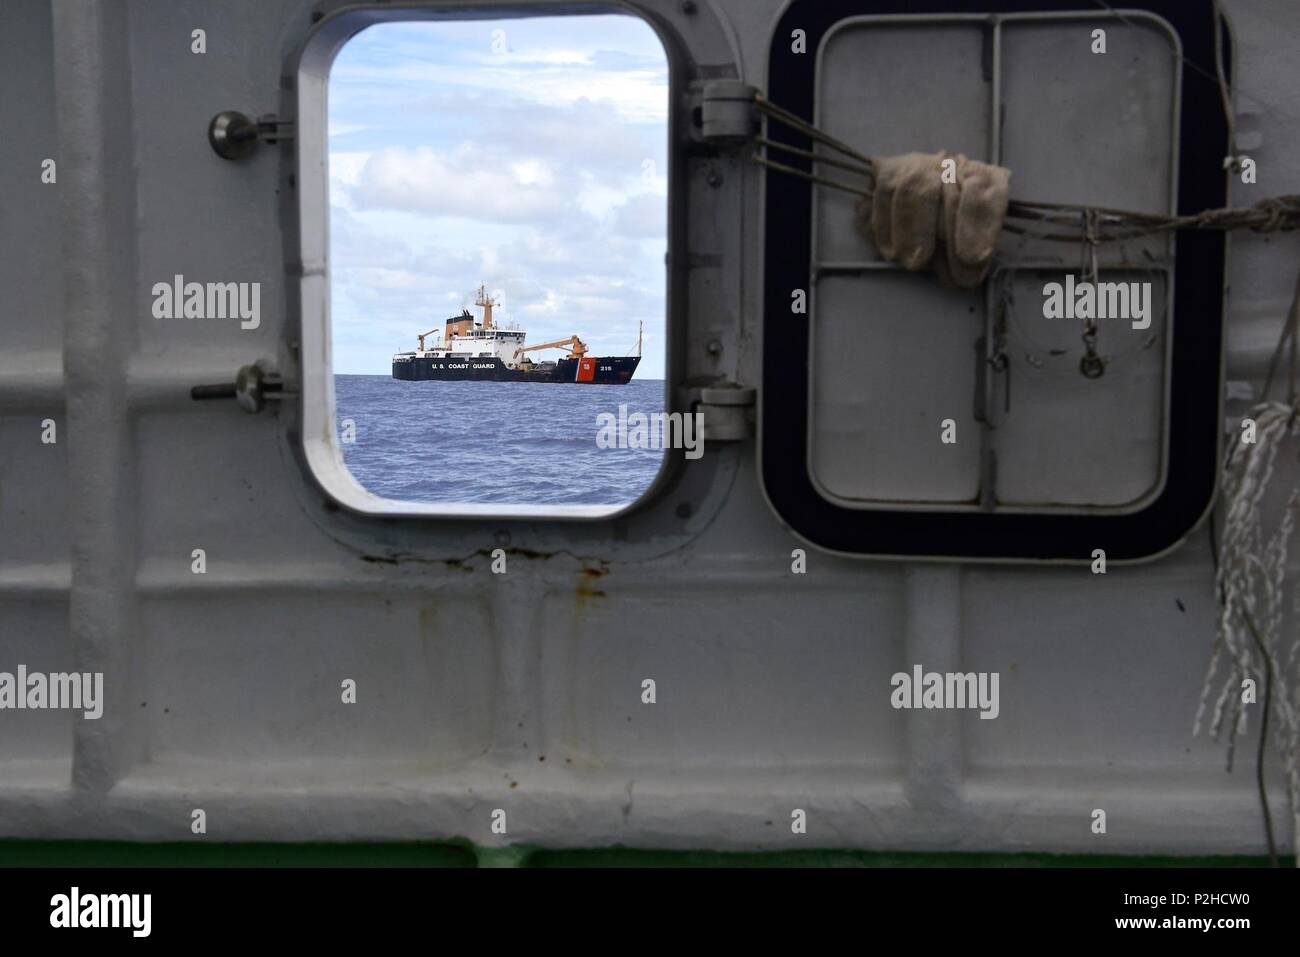 The U.S. Coast Guard buoy tender USCGC Sequoia (WLB-215) maintains position off the port beam of the fishing vessel Ayamaru No. 58 while a boarding team conduct a fisheries enforcement boarding on the vessel in the Palau exclusive economic zone Sept. 3, 2016. The Coast Guard, working with the Palau National Police conducted fisheries enforcement boardings in the Palau EEZ under a bilateral agreement. (U.S. Coast Guard photo by Chief Petty Officer Sara Mooers) - Stock Image